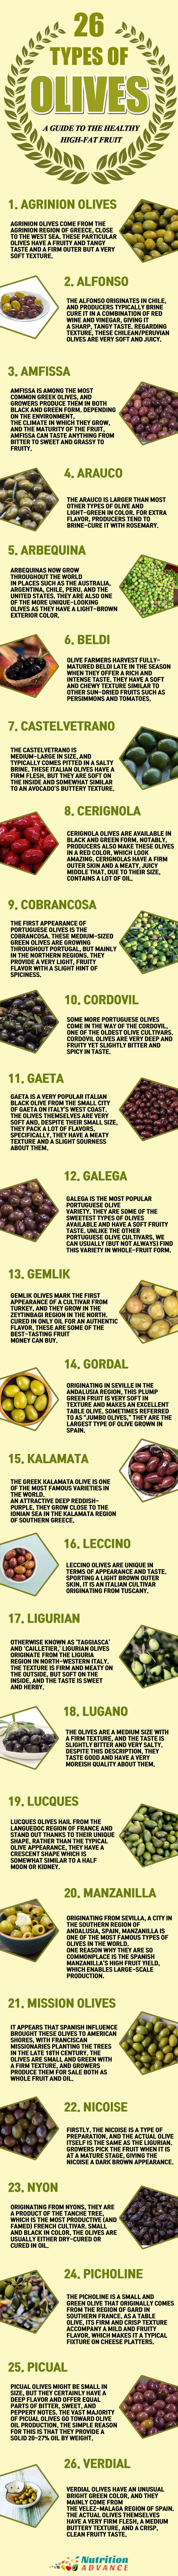 26 Types of Olives and Their Unique Properties | Olives are a delicious high-fat fruit that are popular with almost everyone - whether vegan, or on a low carb or keto diet - olives are widely recognized as a health food. These 26 olive varieties are some of the most popular olives in the world today.